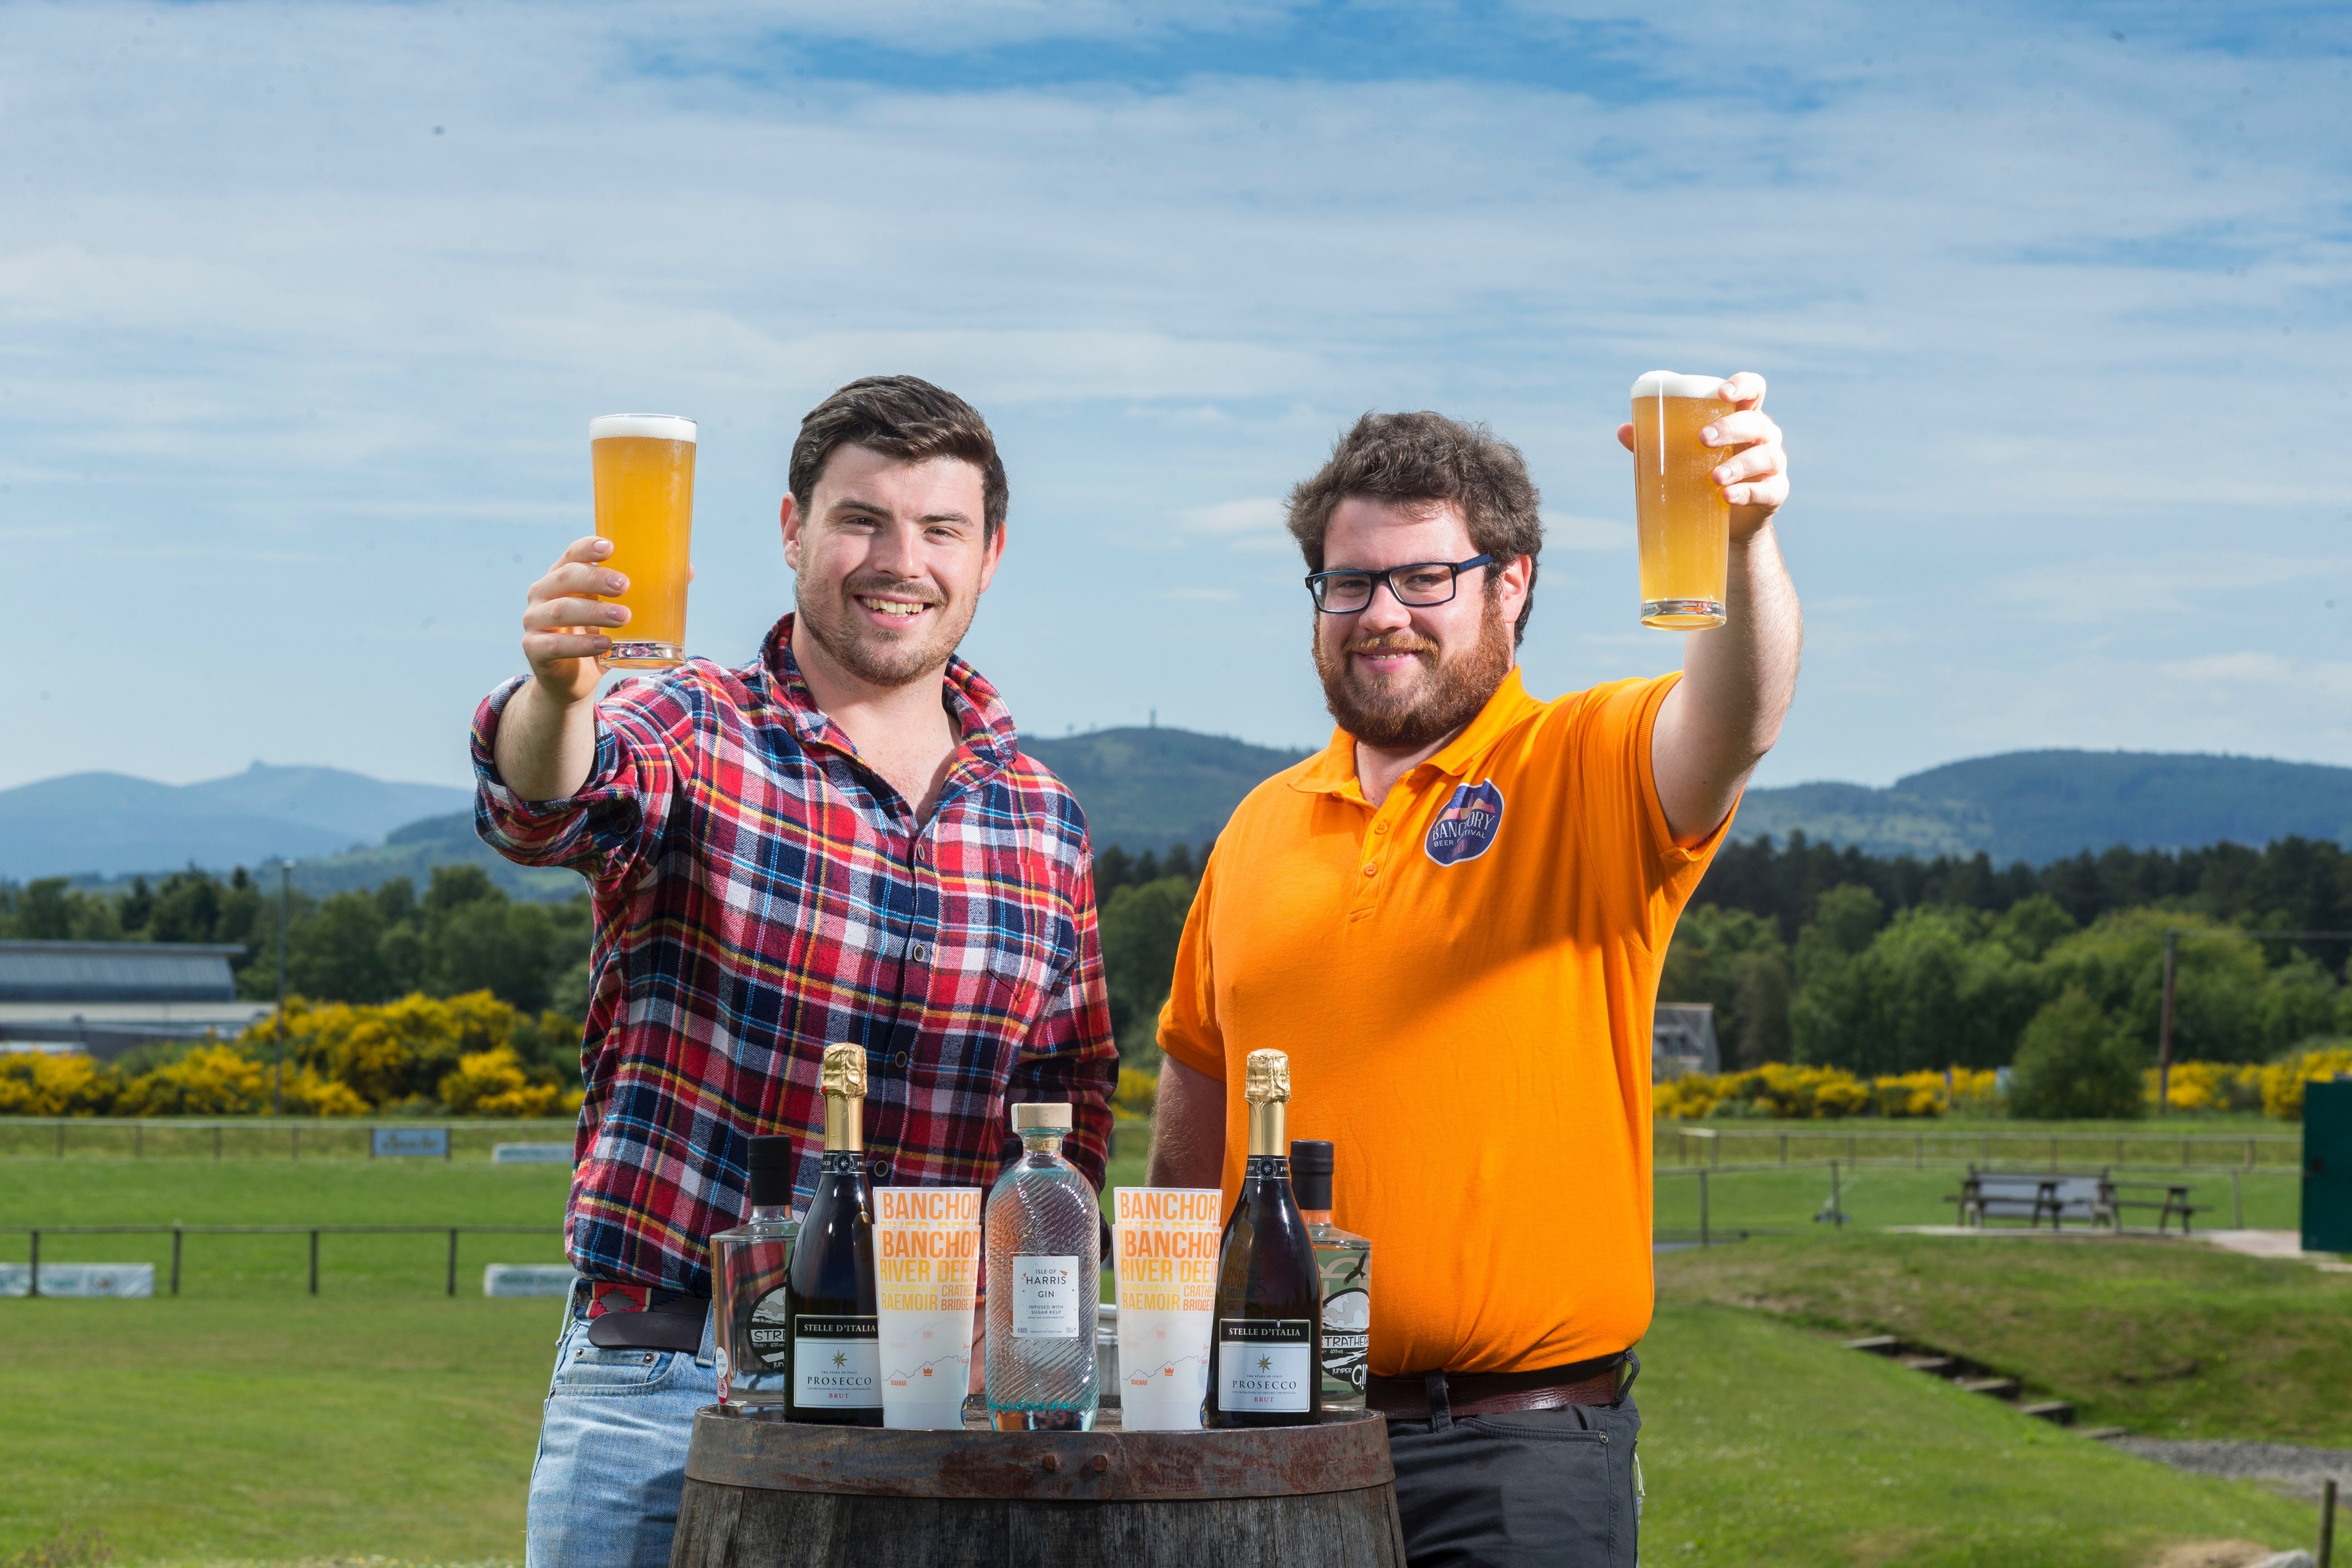 Guy (checked shirt) and Mungo Finlayson (MFGF Events) who run the Banchory Beer Festival